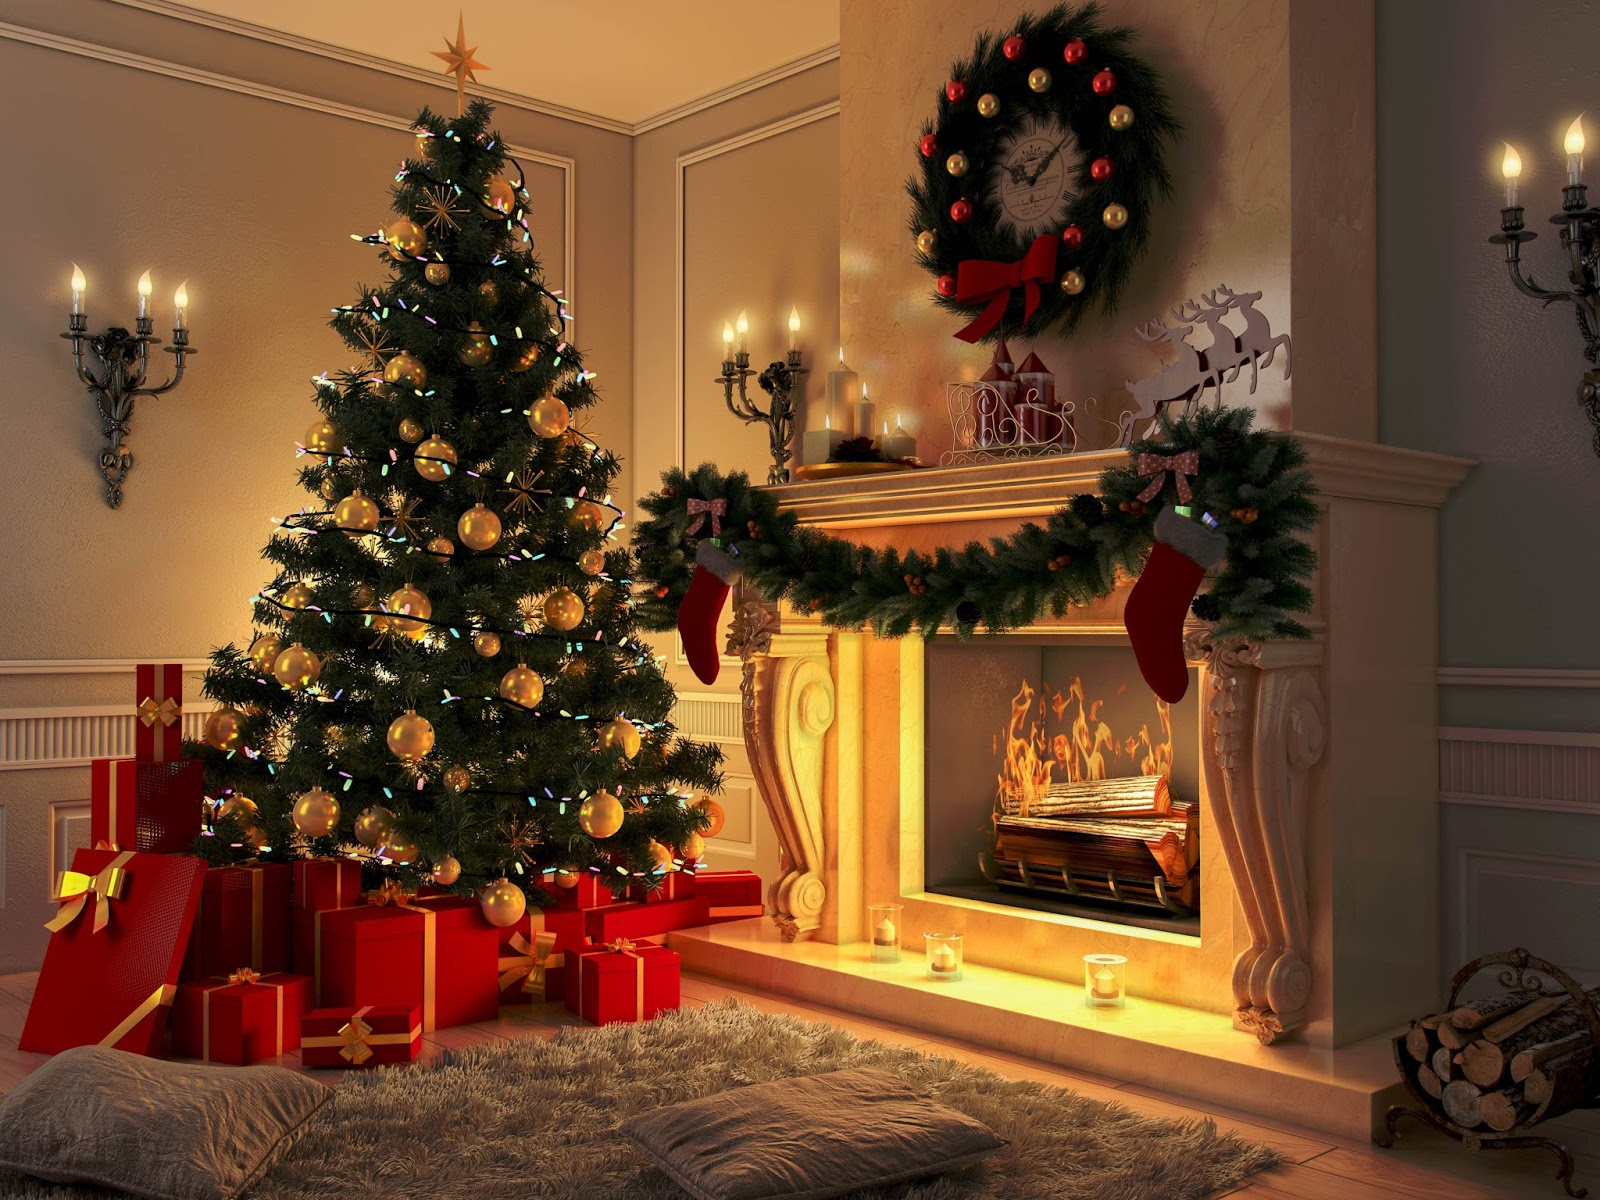 christmas items needed for decorating your home - Decorating Your House For Christmas